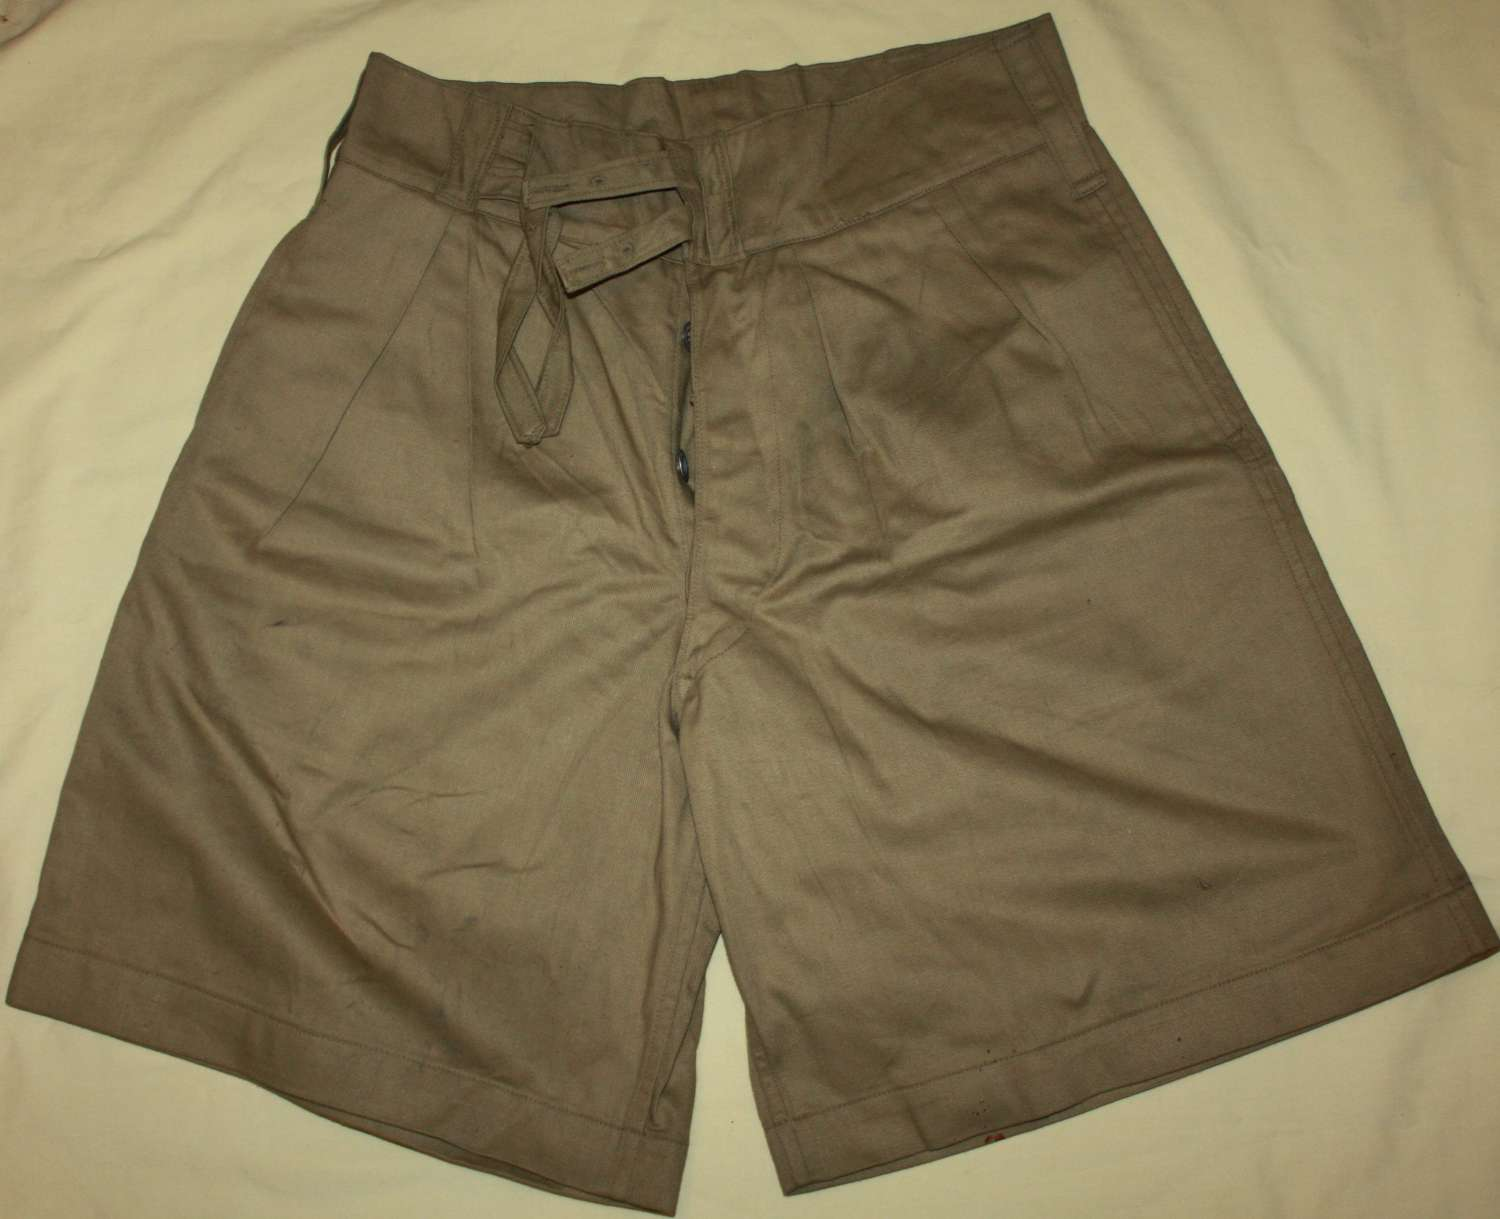 A GOOD PAIR OF THE BRITISH ISSUE KD SHORTS 1945 DATED 30-32 WAIST